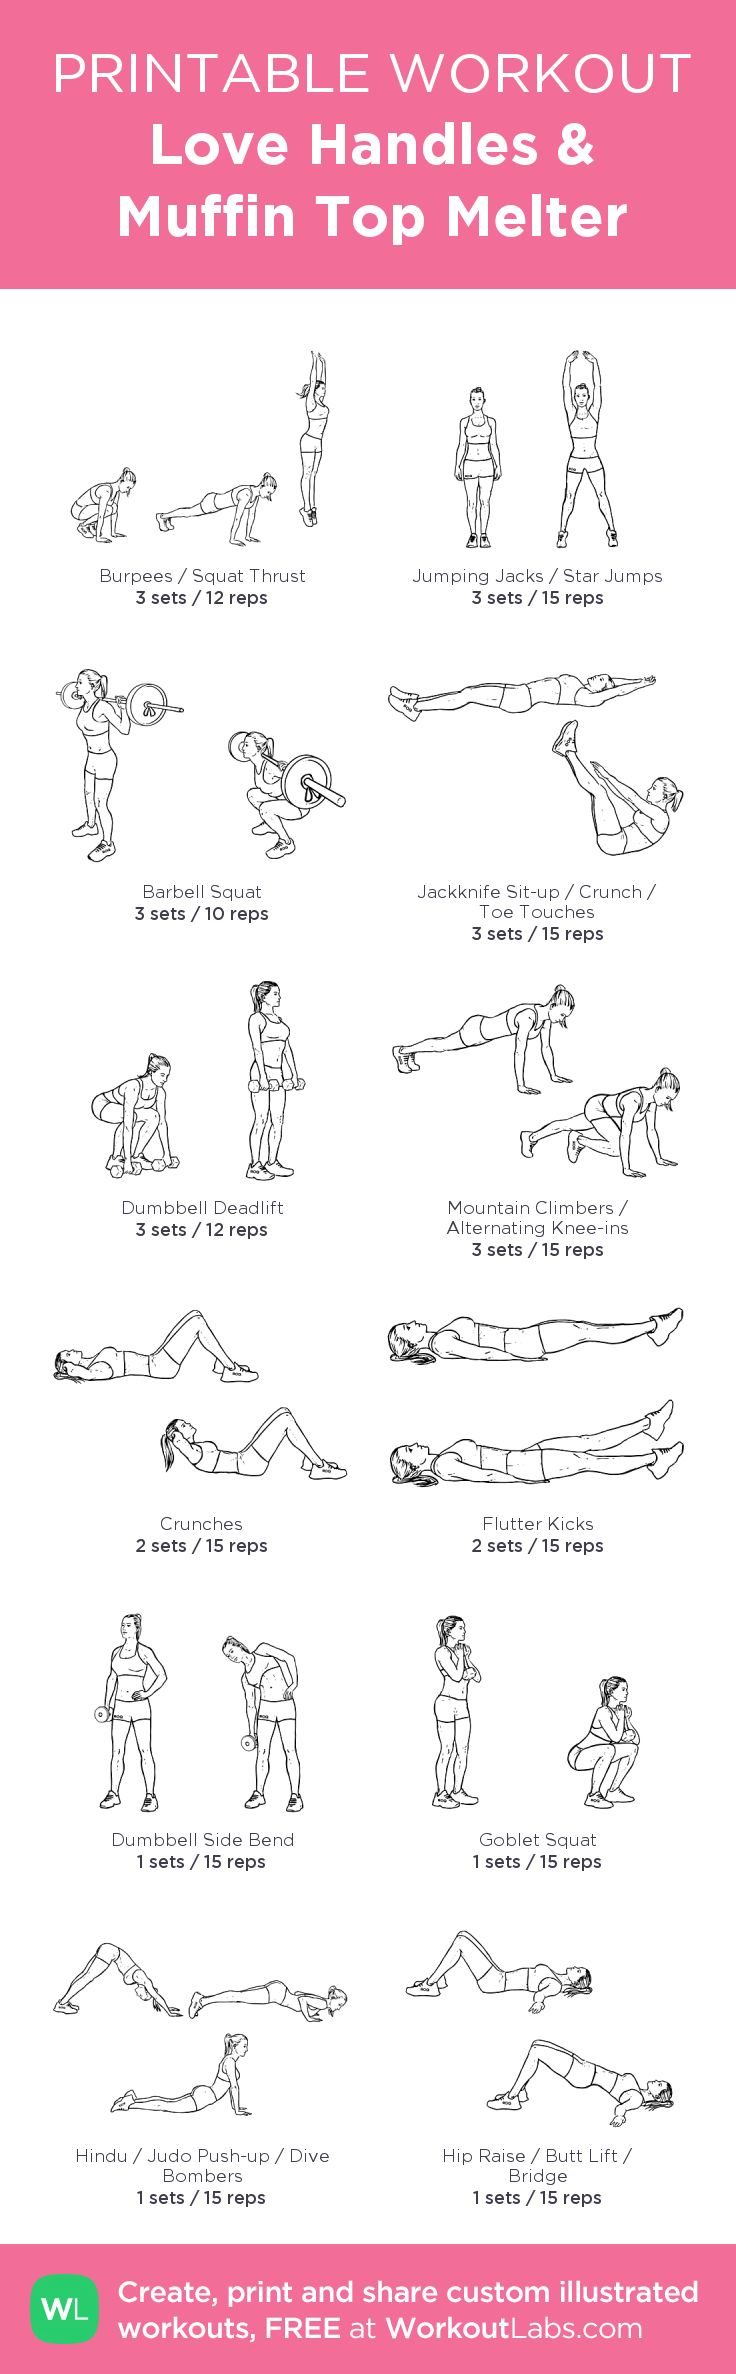 Fitness Motivation : Love Handles & Muffin Top Melter: my